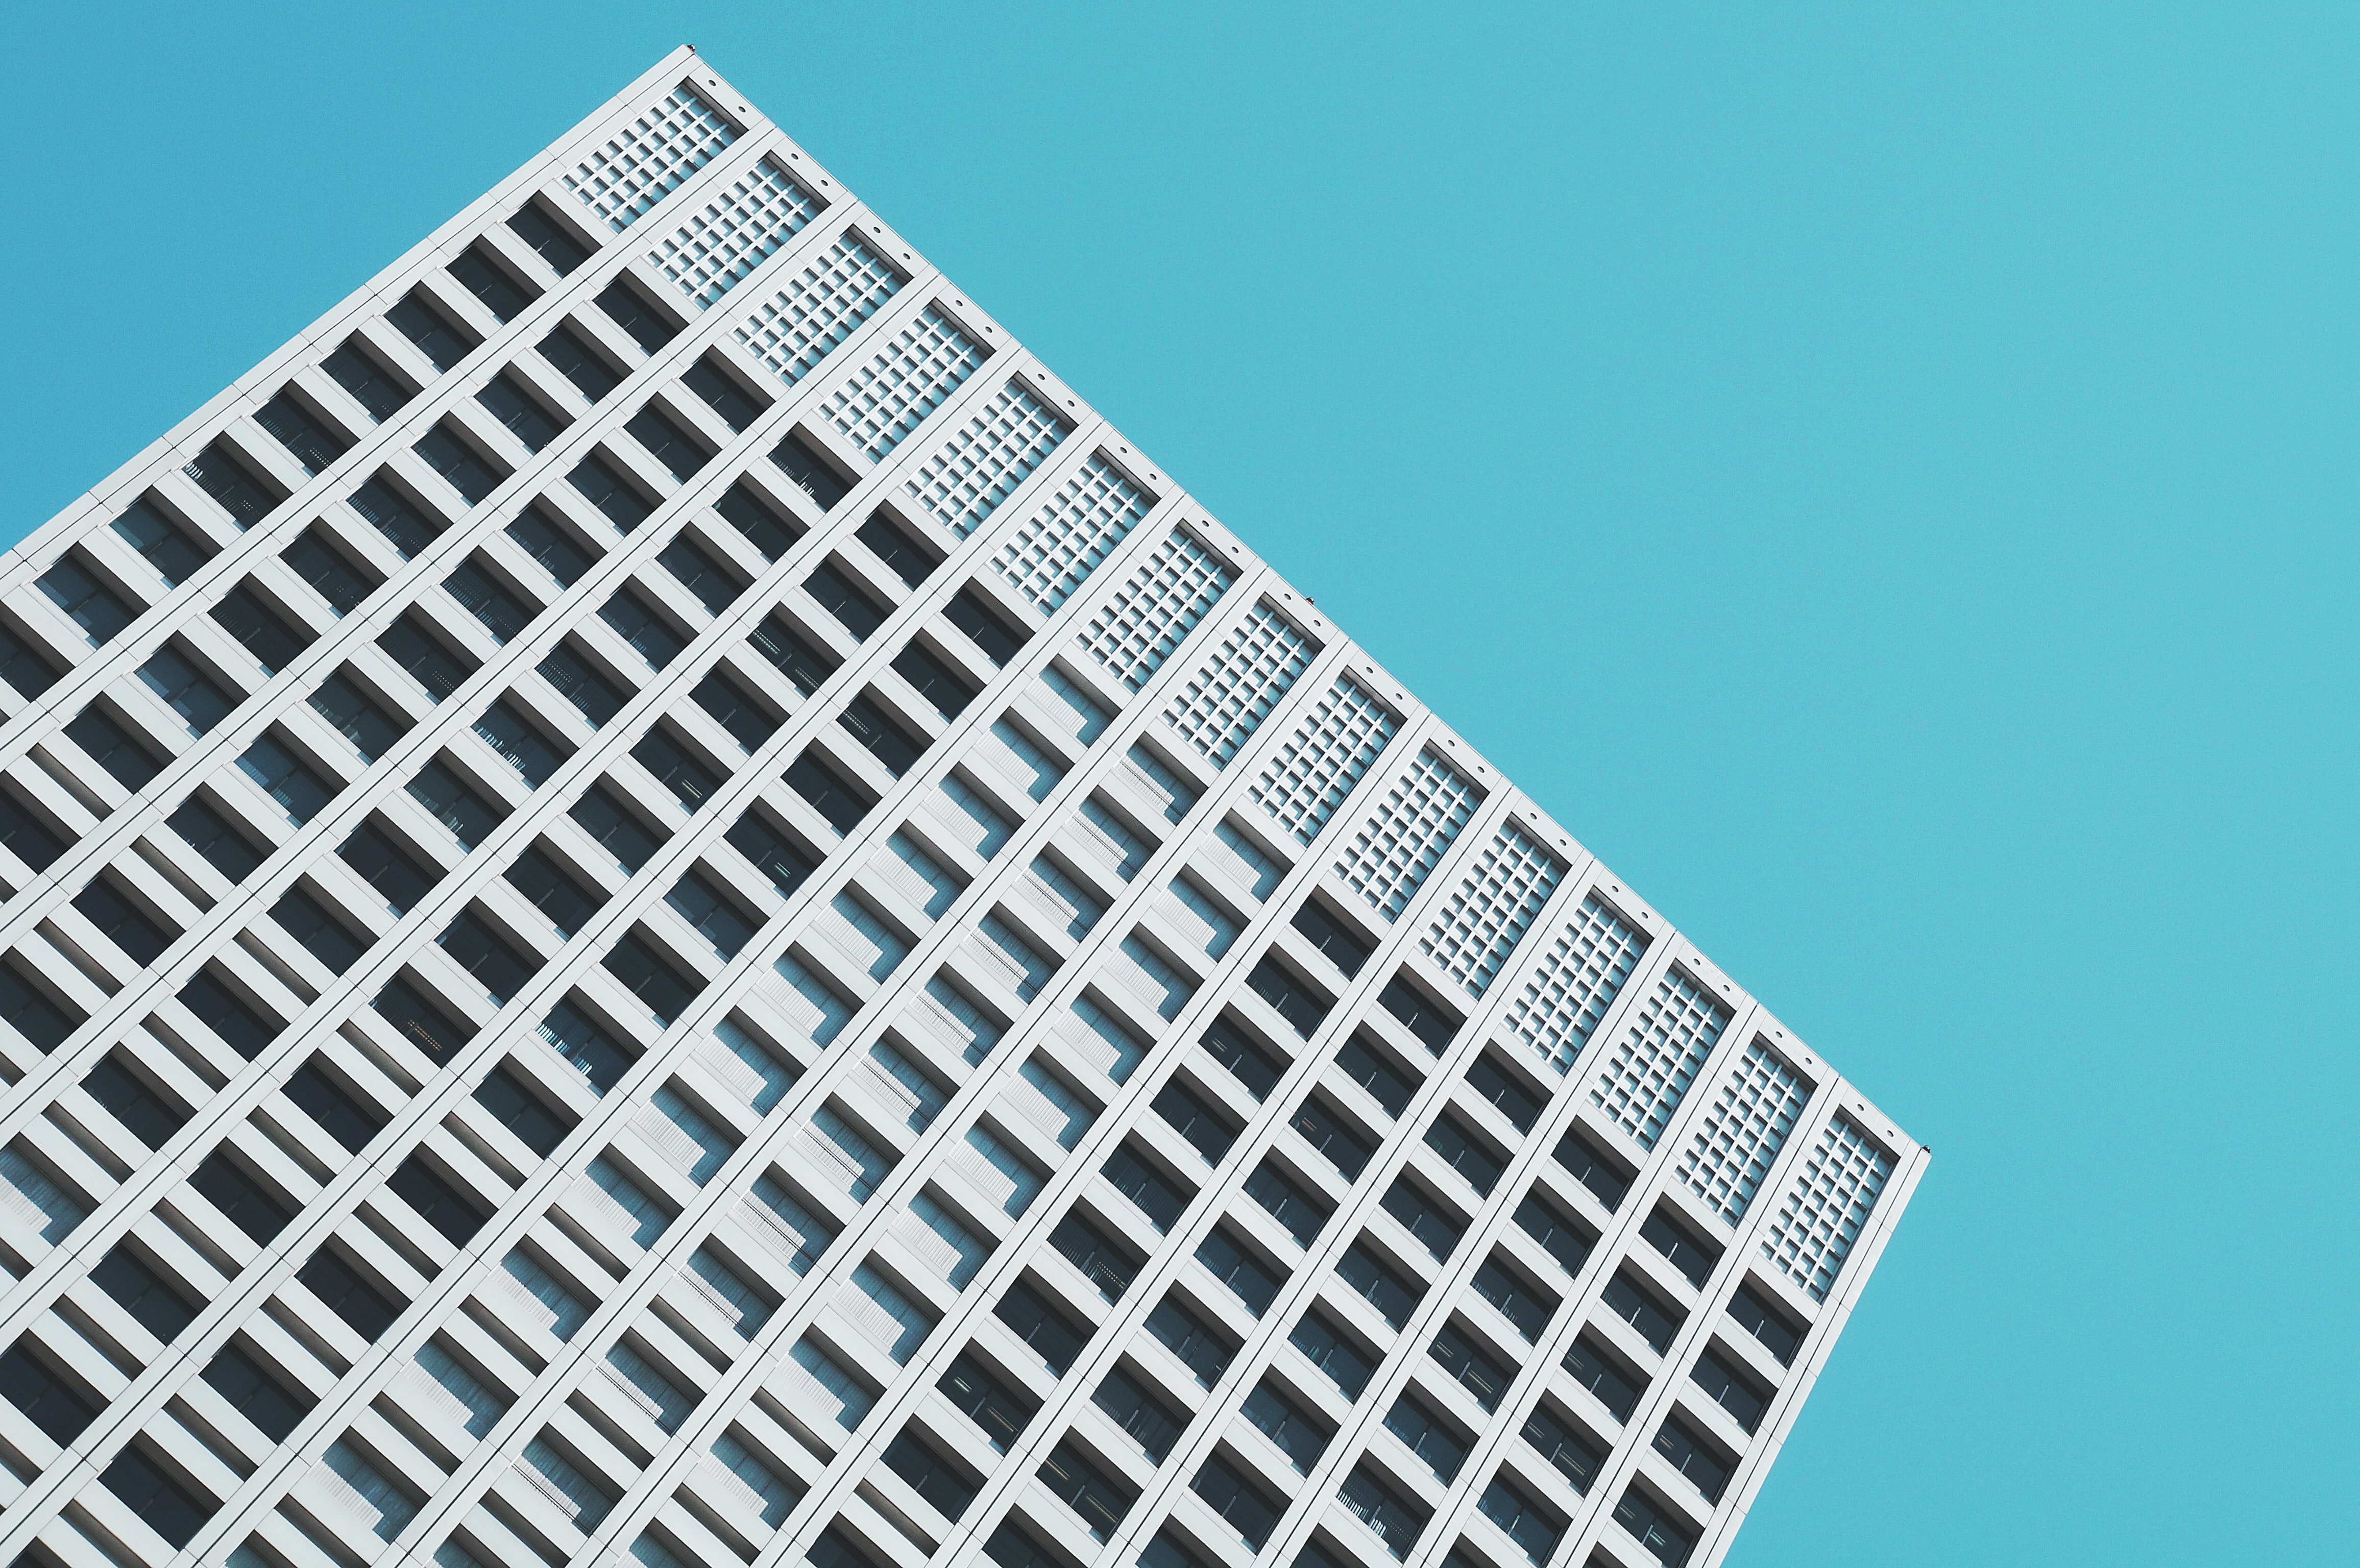 A minimalist concrete skyscraper building with many windows stands at an angle under blue sky